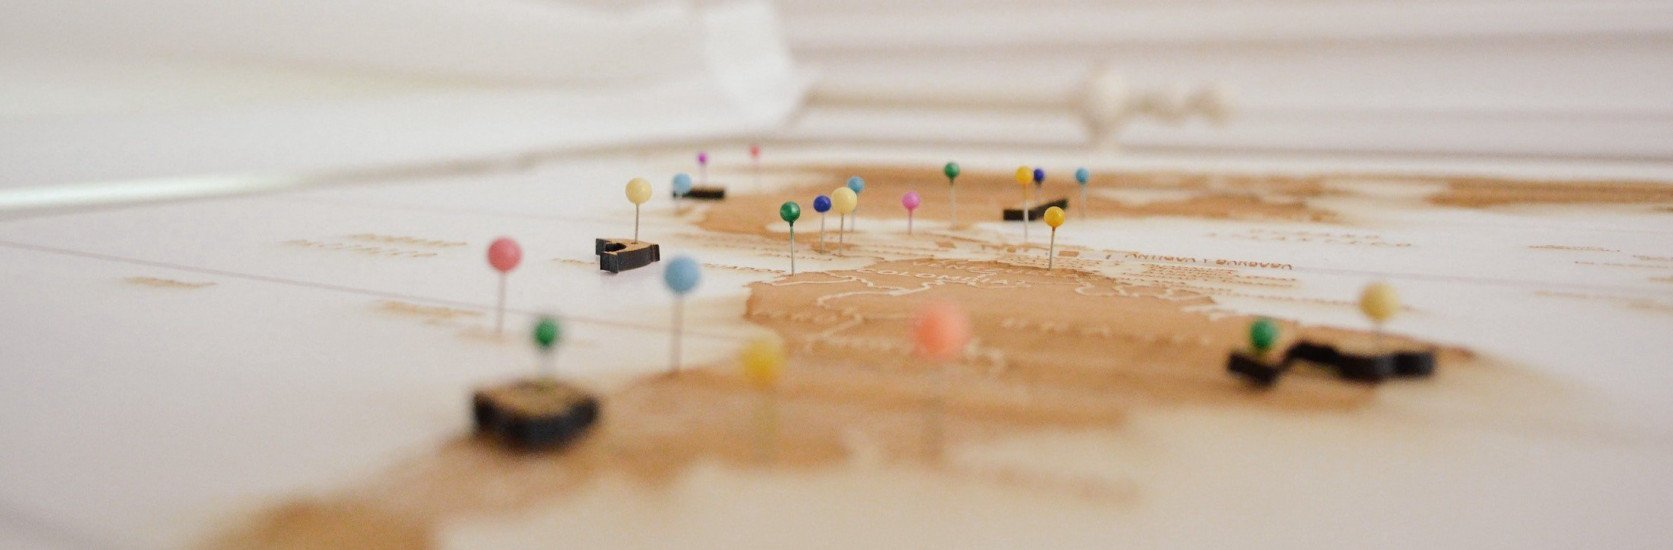 A wooden 2D global map with colorful pins sticking out.